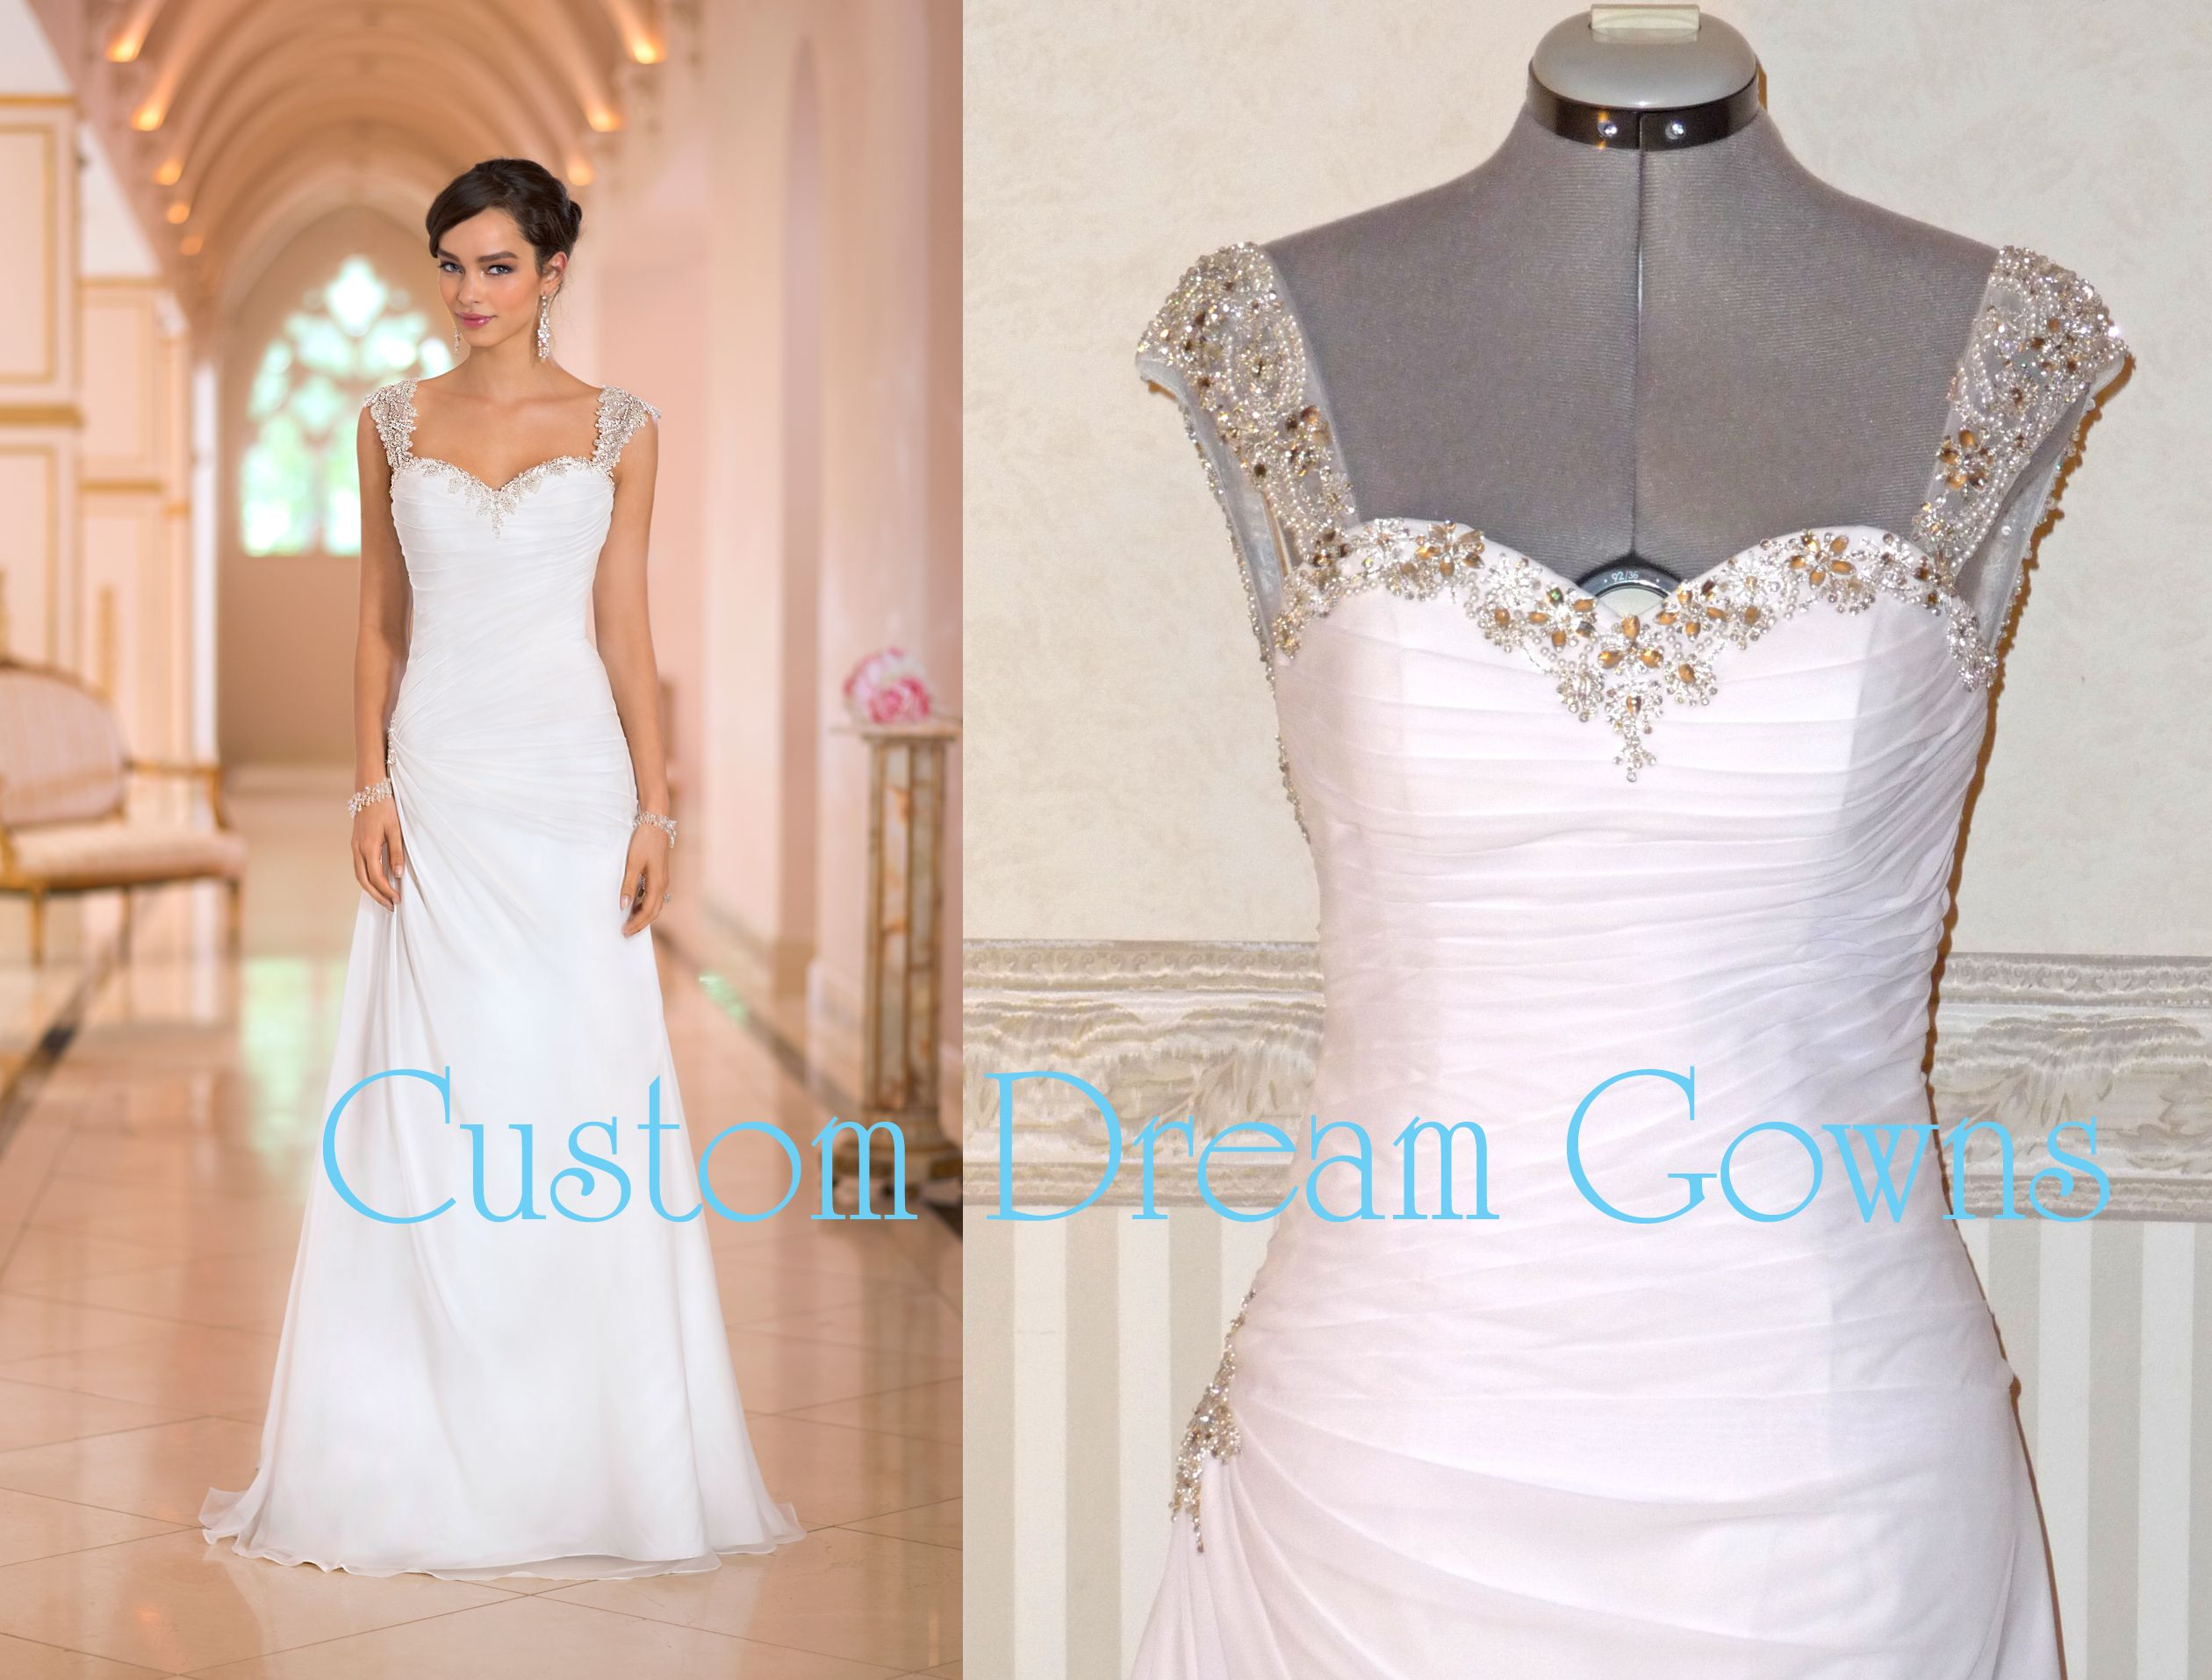 Crystal Beaded Sweetheart Neckline and Shoulder Straps, Ruched Pleated Bodice with Side Swirl of Pleated Draping Accented with Crystal Beading, Chiffon A-Line Skirt, Court Train, Crystal Beaded Low Back with Crystal Buttons Over Hidden Zipper Closure. #Customweddingdress #customweddinggown #customdress #crystals #bling #gorgeous #weddingdress #weddinggown #aline #chiffon